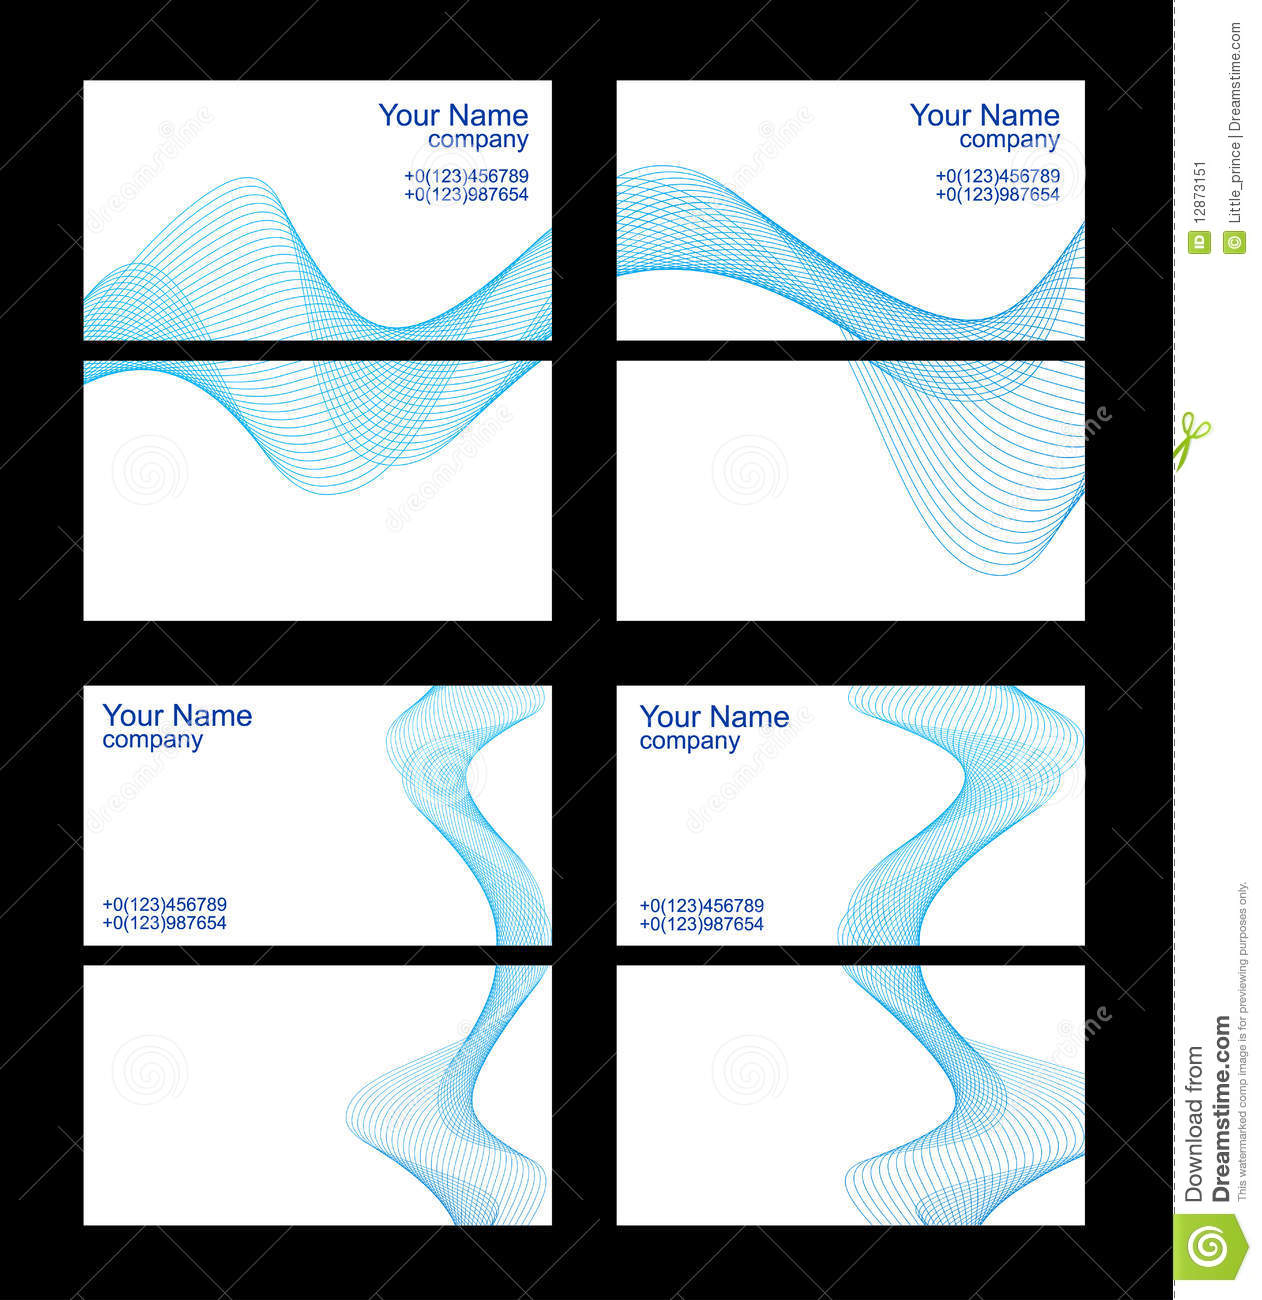 Business Cards Templates Front And Back Stock Image   Image  12873151 VyEyPcbs